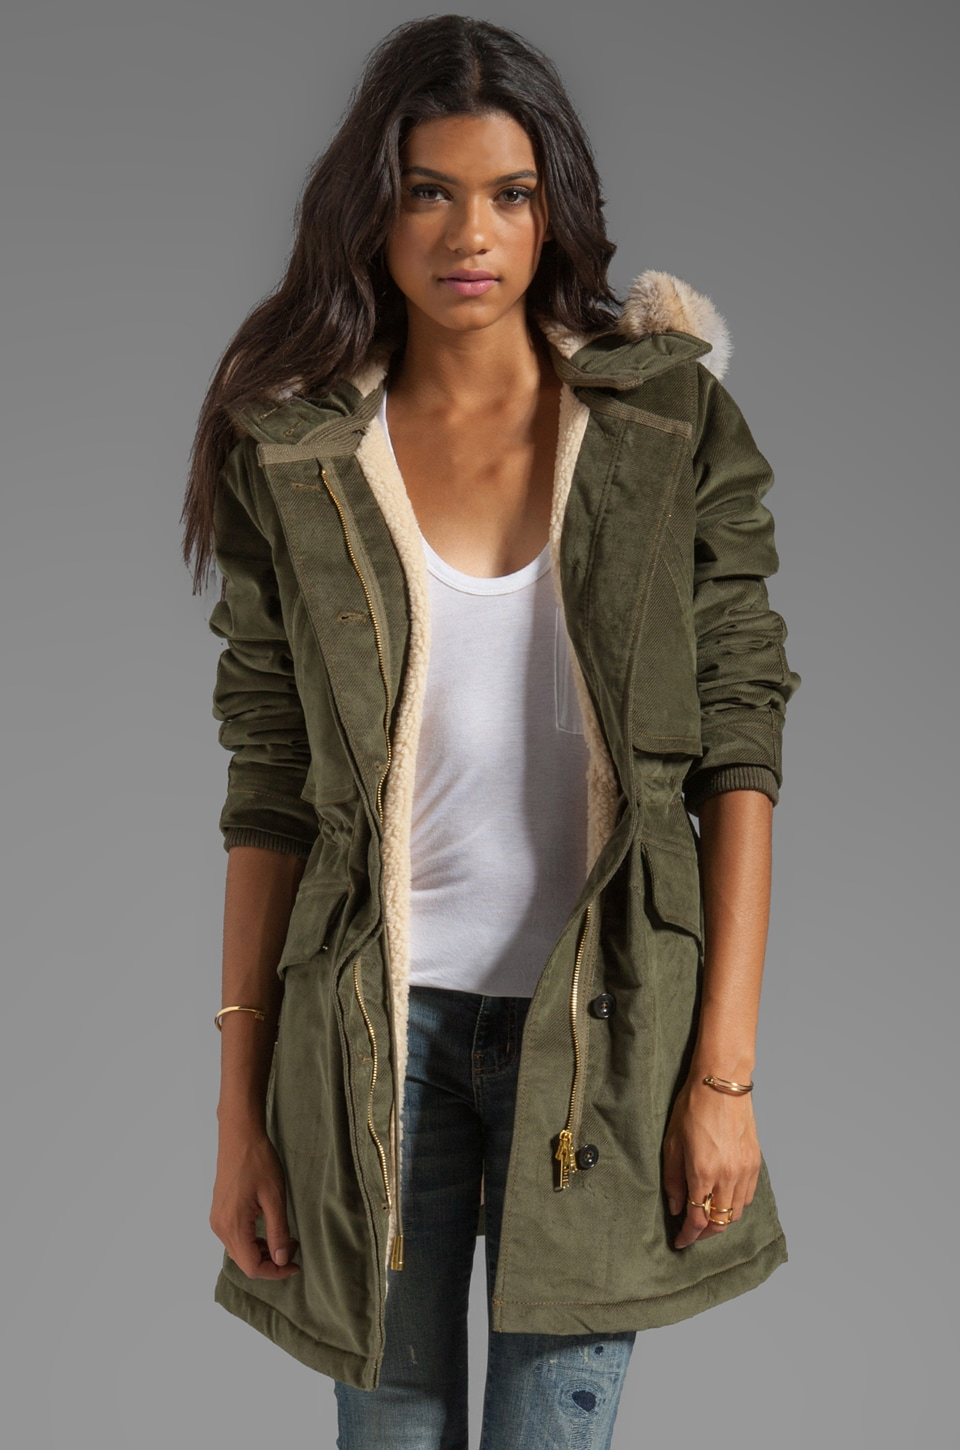 Marc by Marc Jacobs Rainbow Corded Twill Coat in Foliage Green